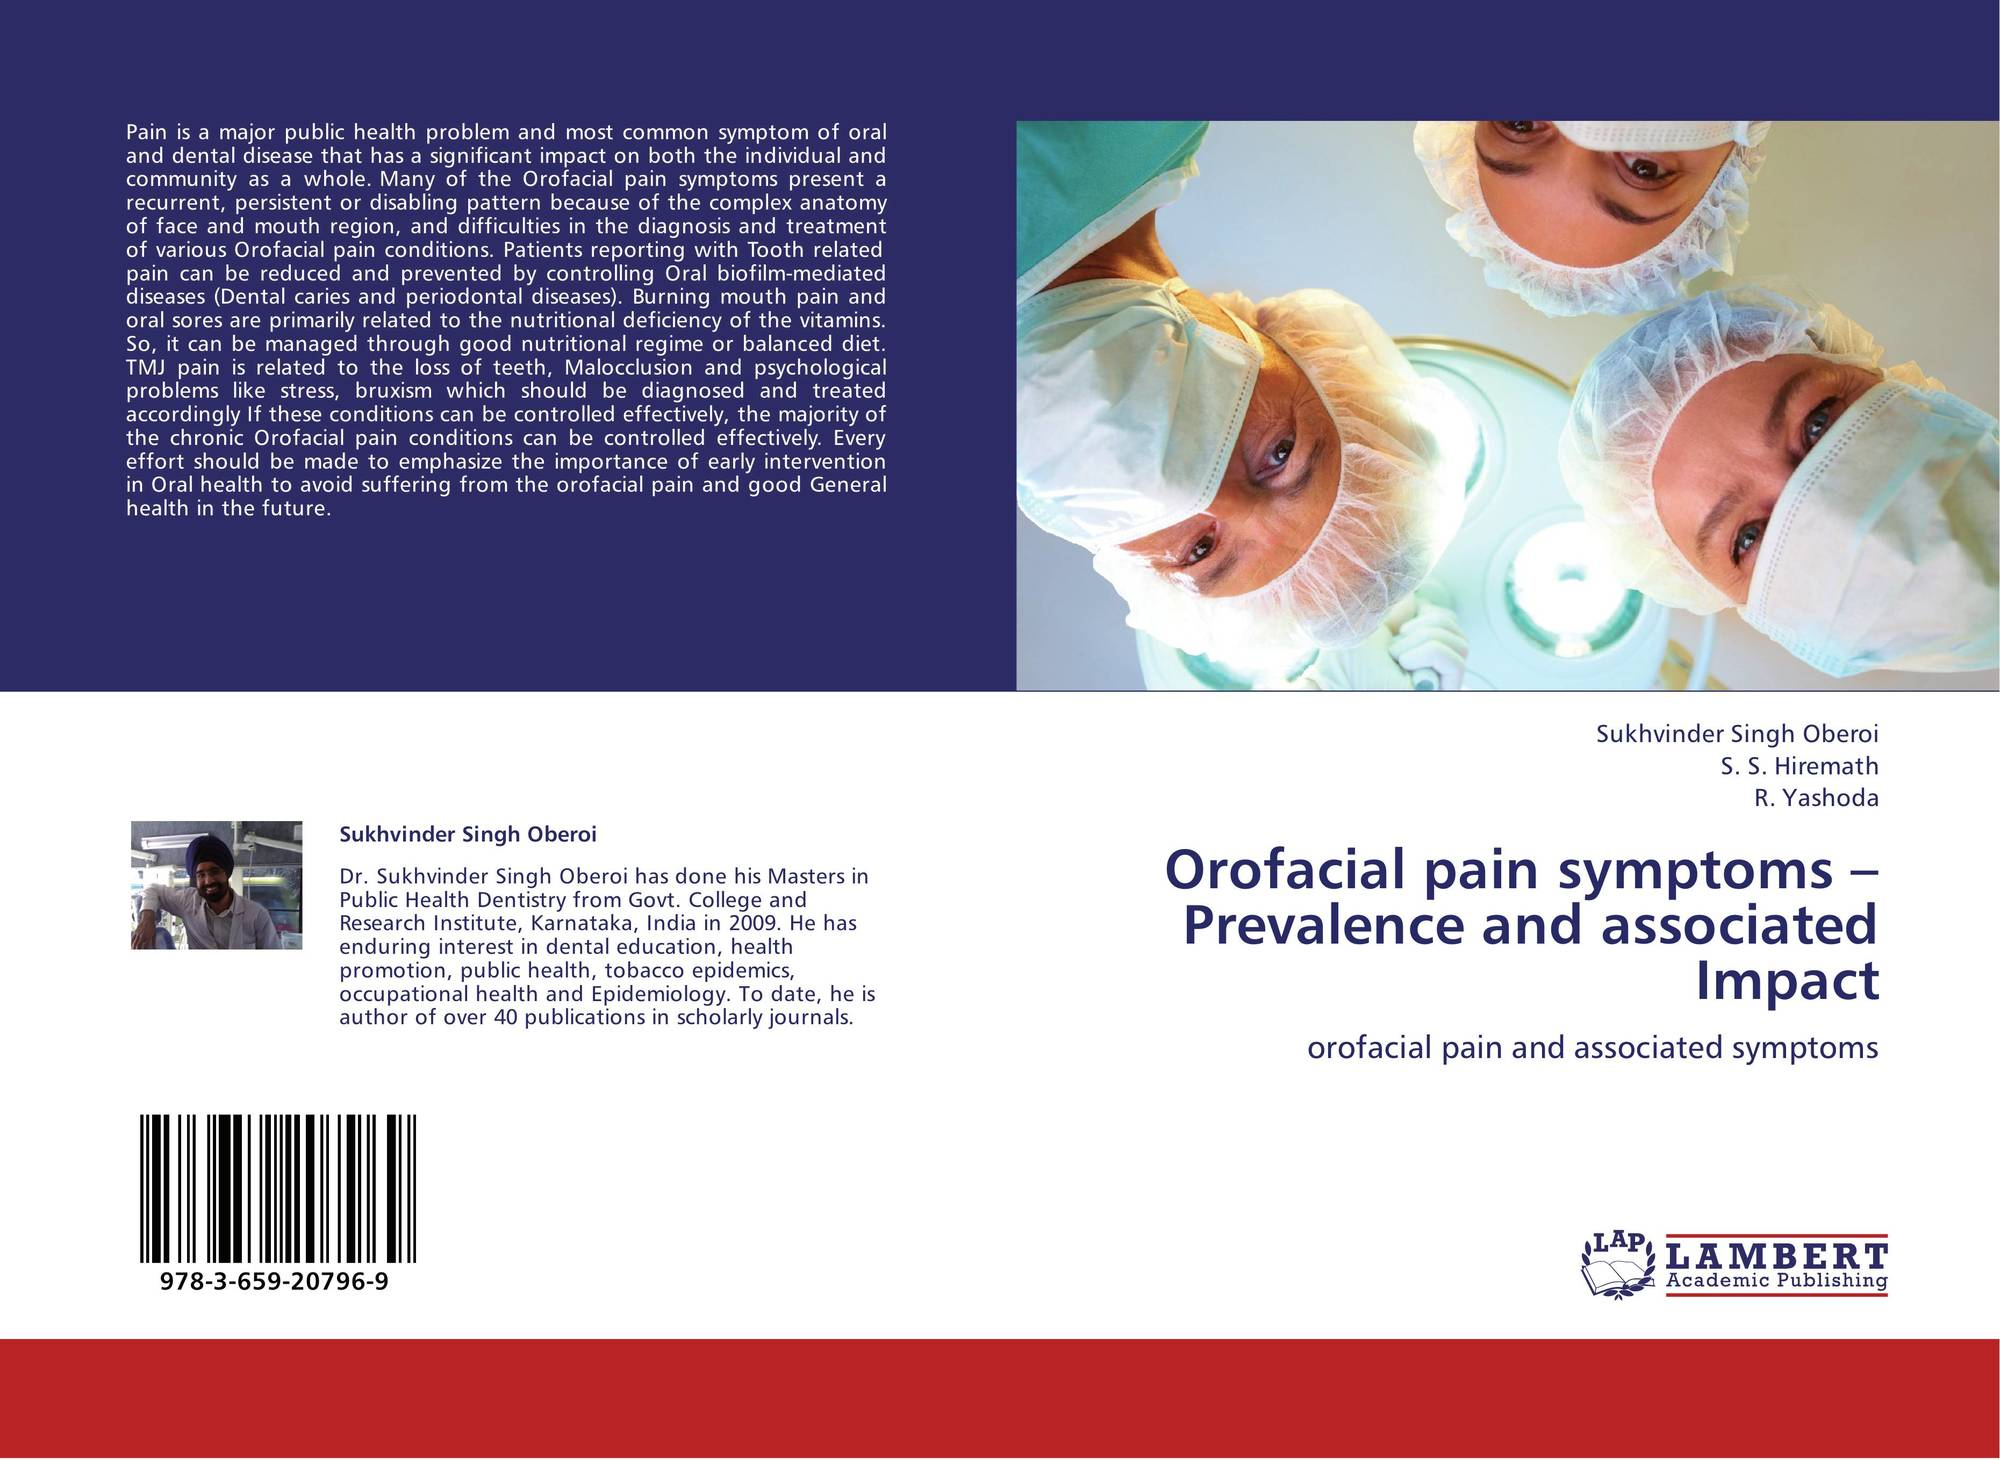 Orofacial pain symptoms – Prevalence and associated Impact